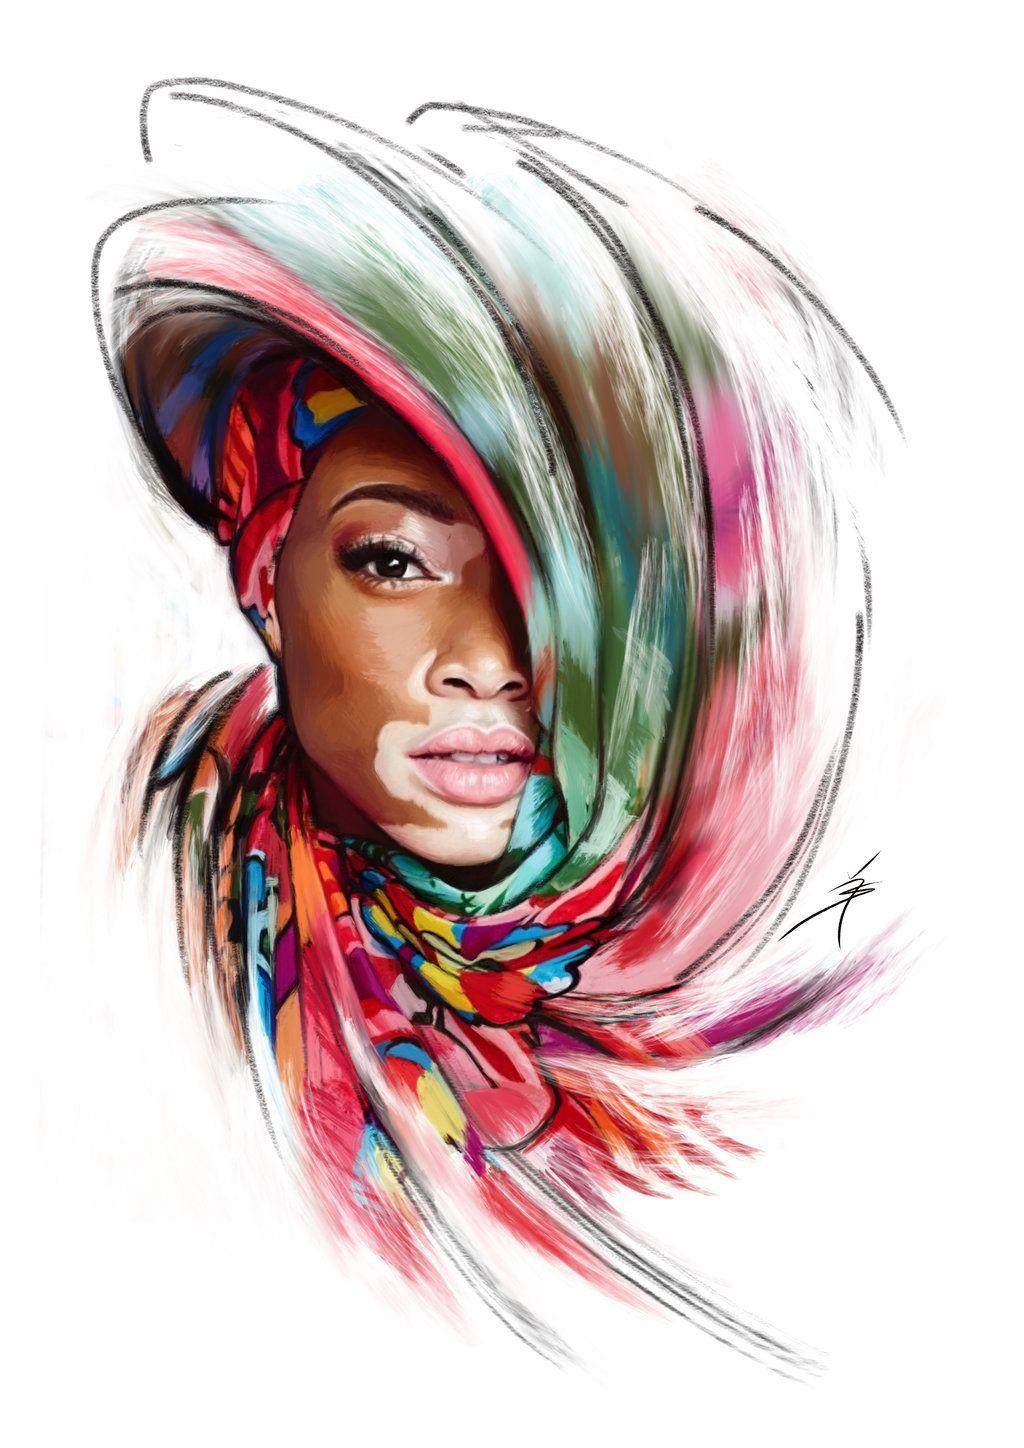 Winnie Harlow Portrait Digital Painting by Artofyasin on DeviantArt